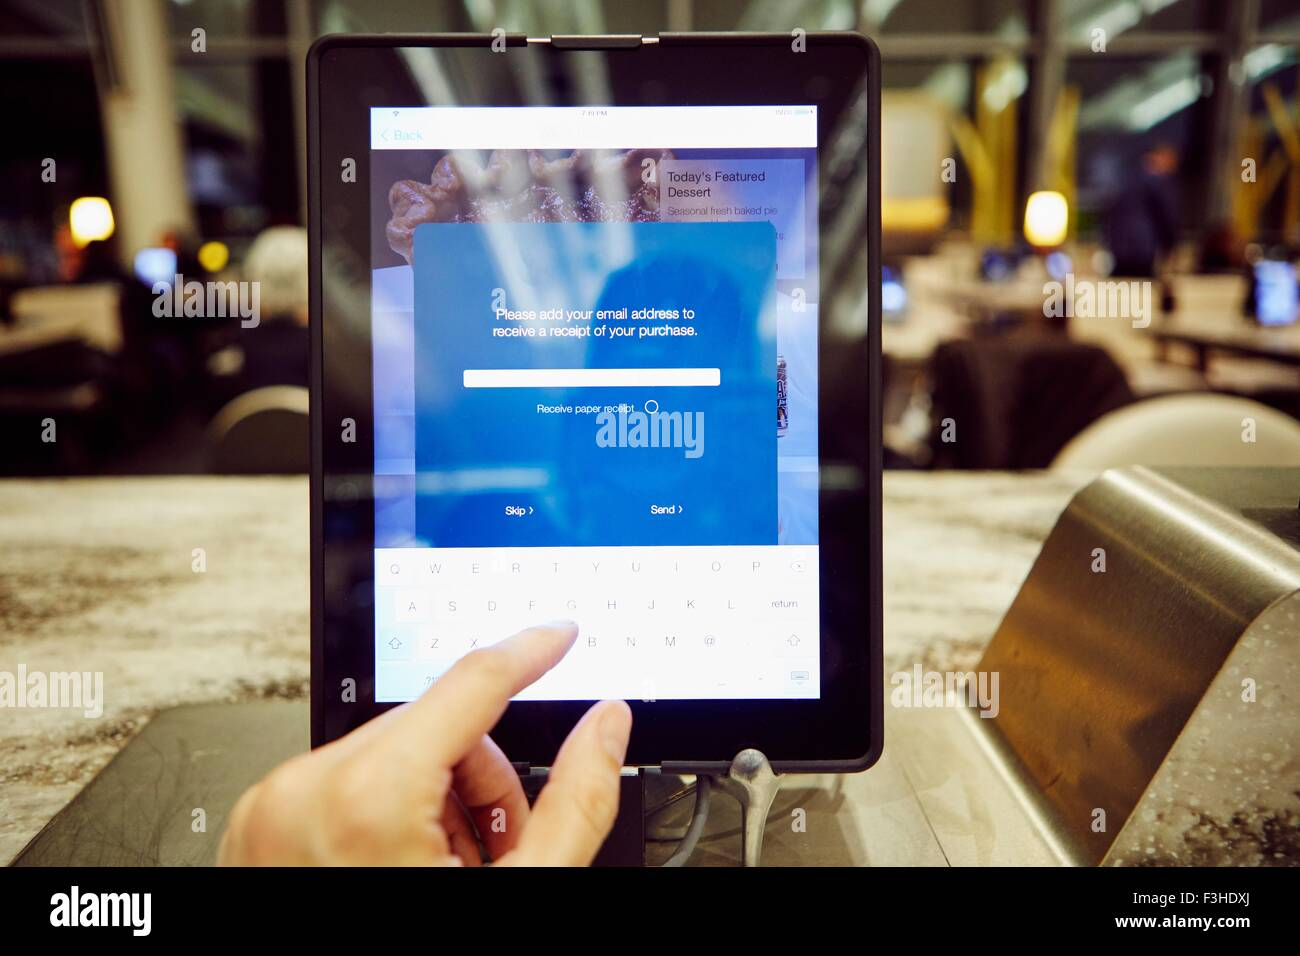 Womans hand using digital tablet touchscreen for restaurant  payment - Stock Image